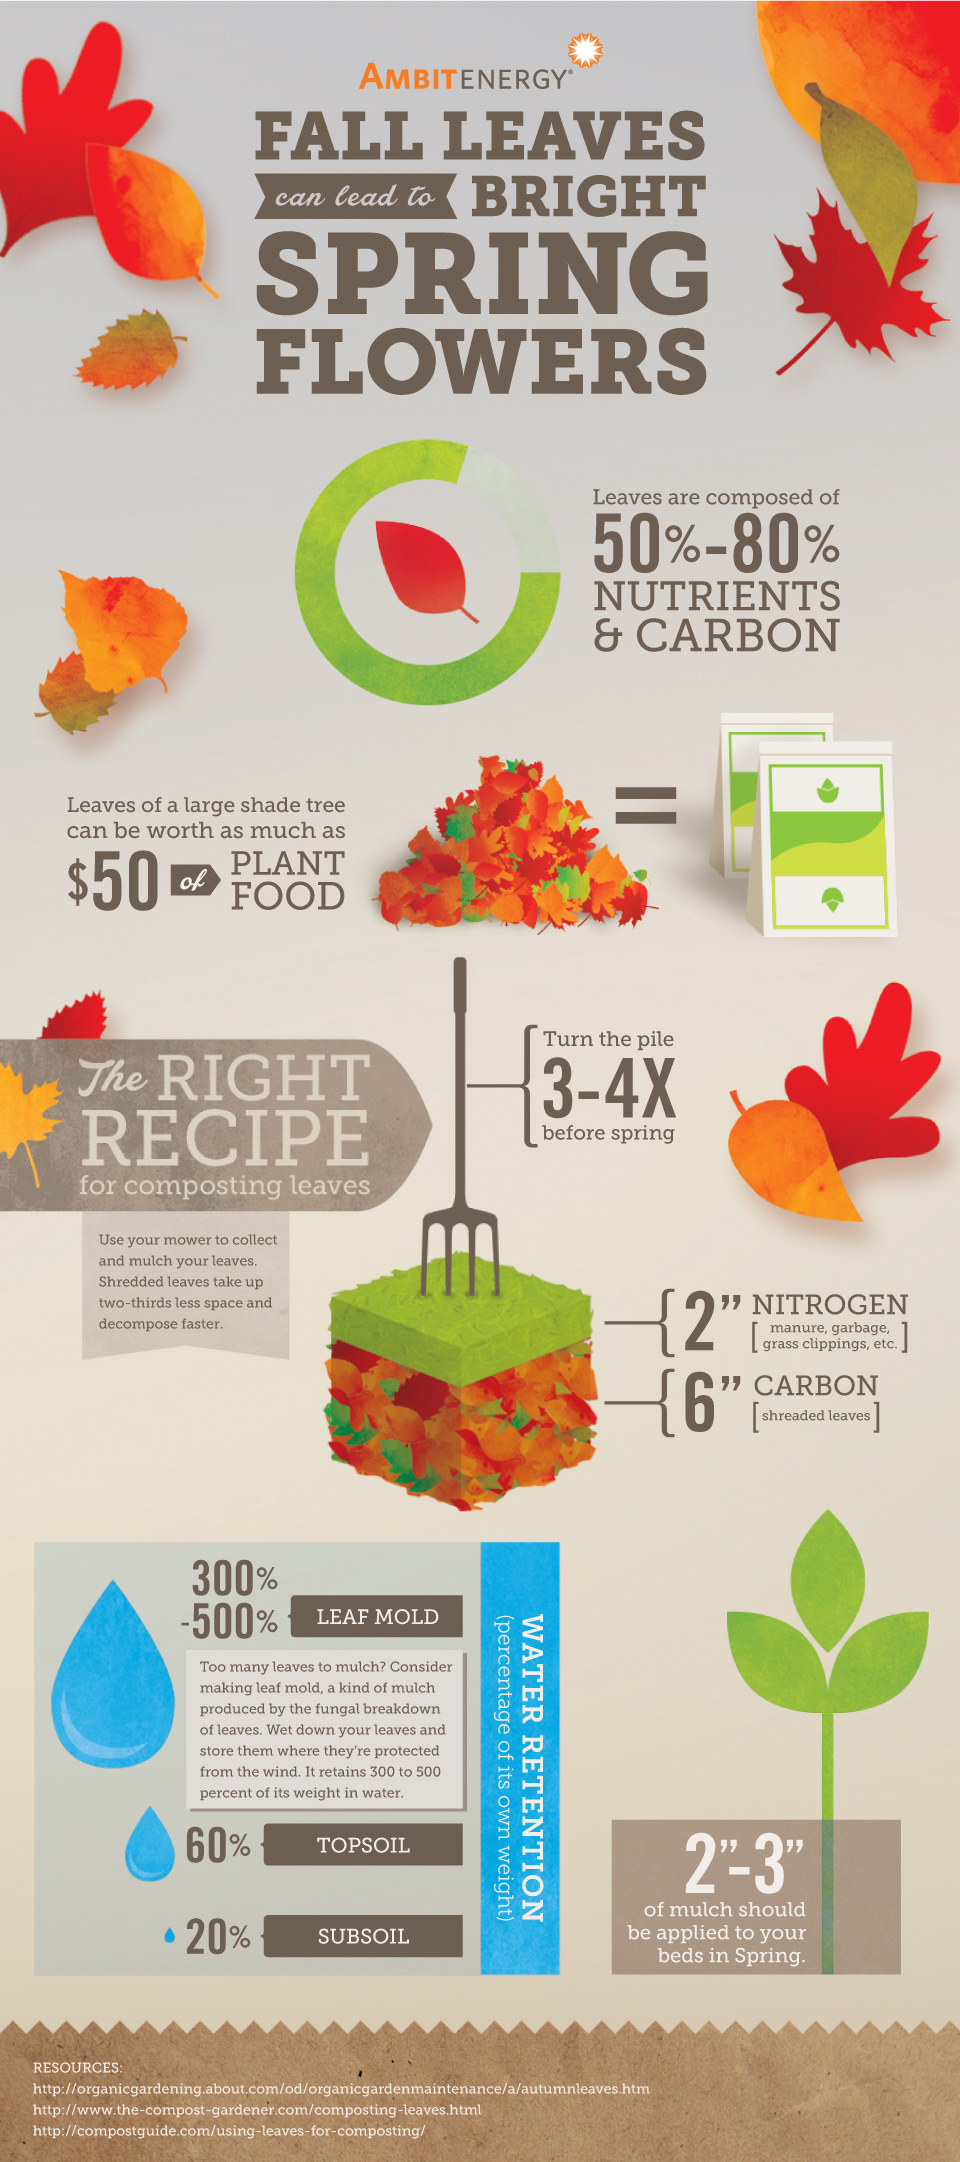 Colorful Fall Leaves Can Lead To Bright Spring Flowers Ambit Energy